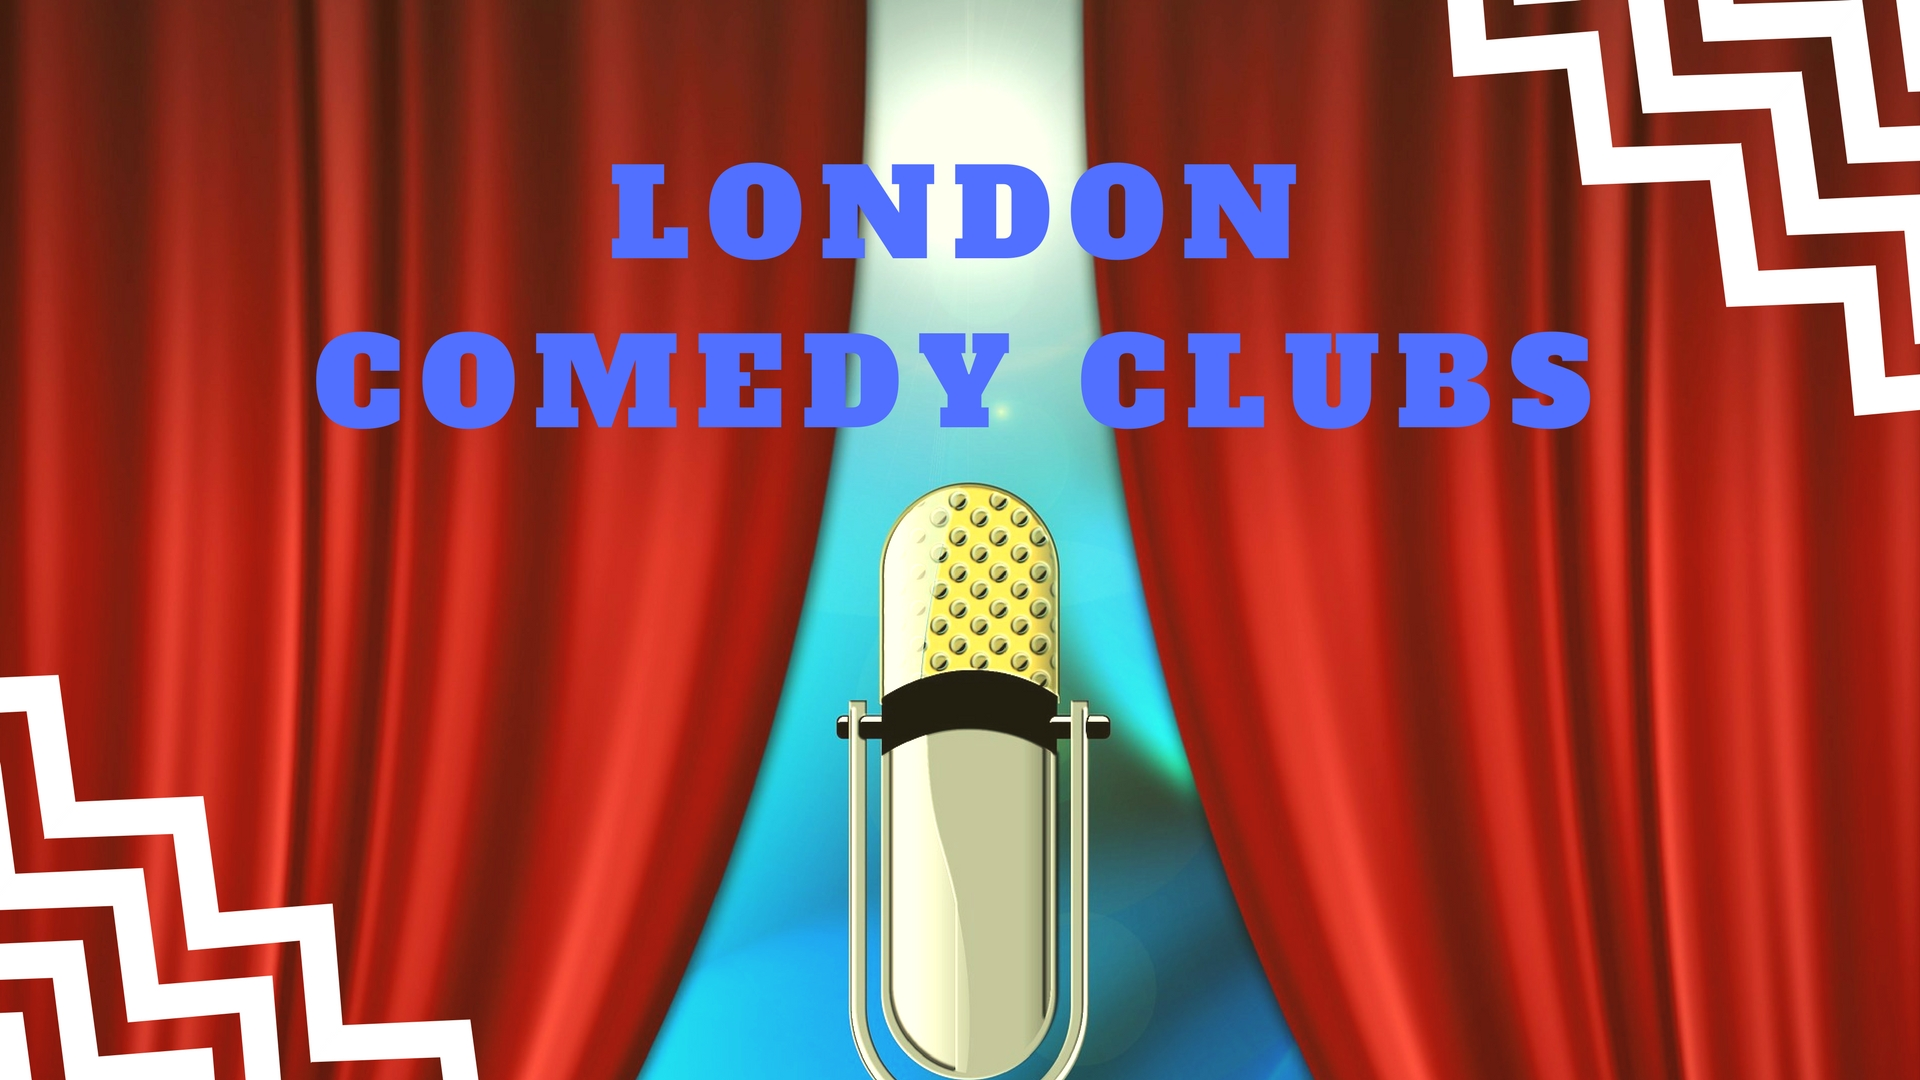 London Comedy Clubs